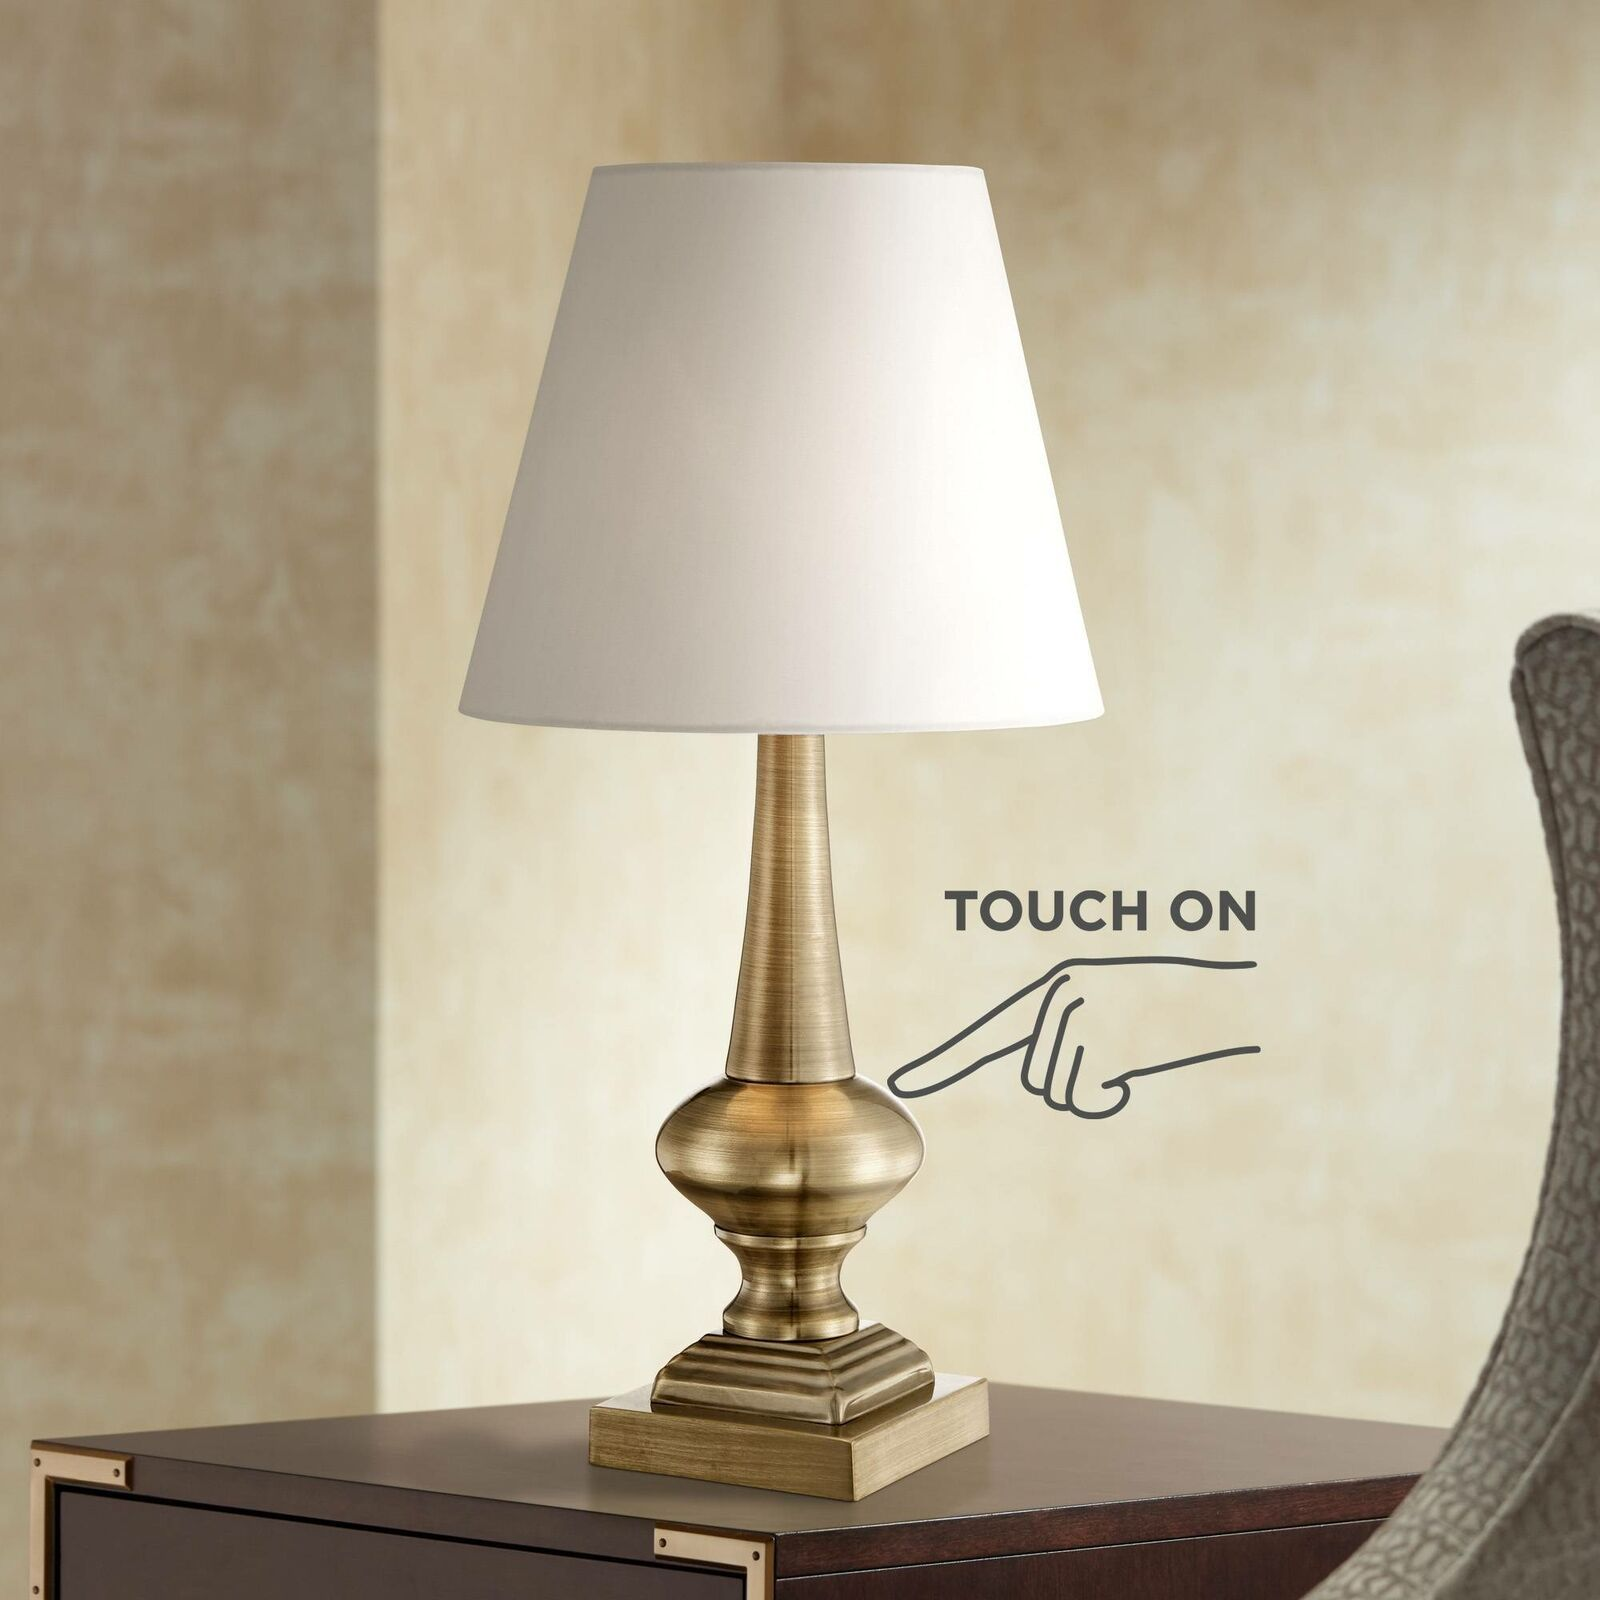 Details About Traditional Table Lamp Antique Brass Touch On White Shade For Living Room Desk Traditional Table Lamps Table Lamp Lamp